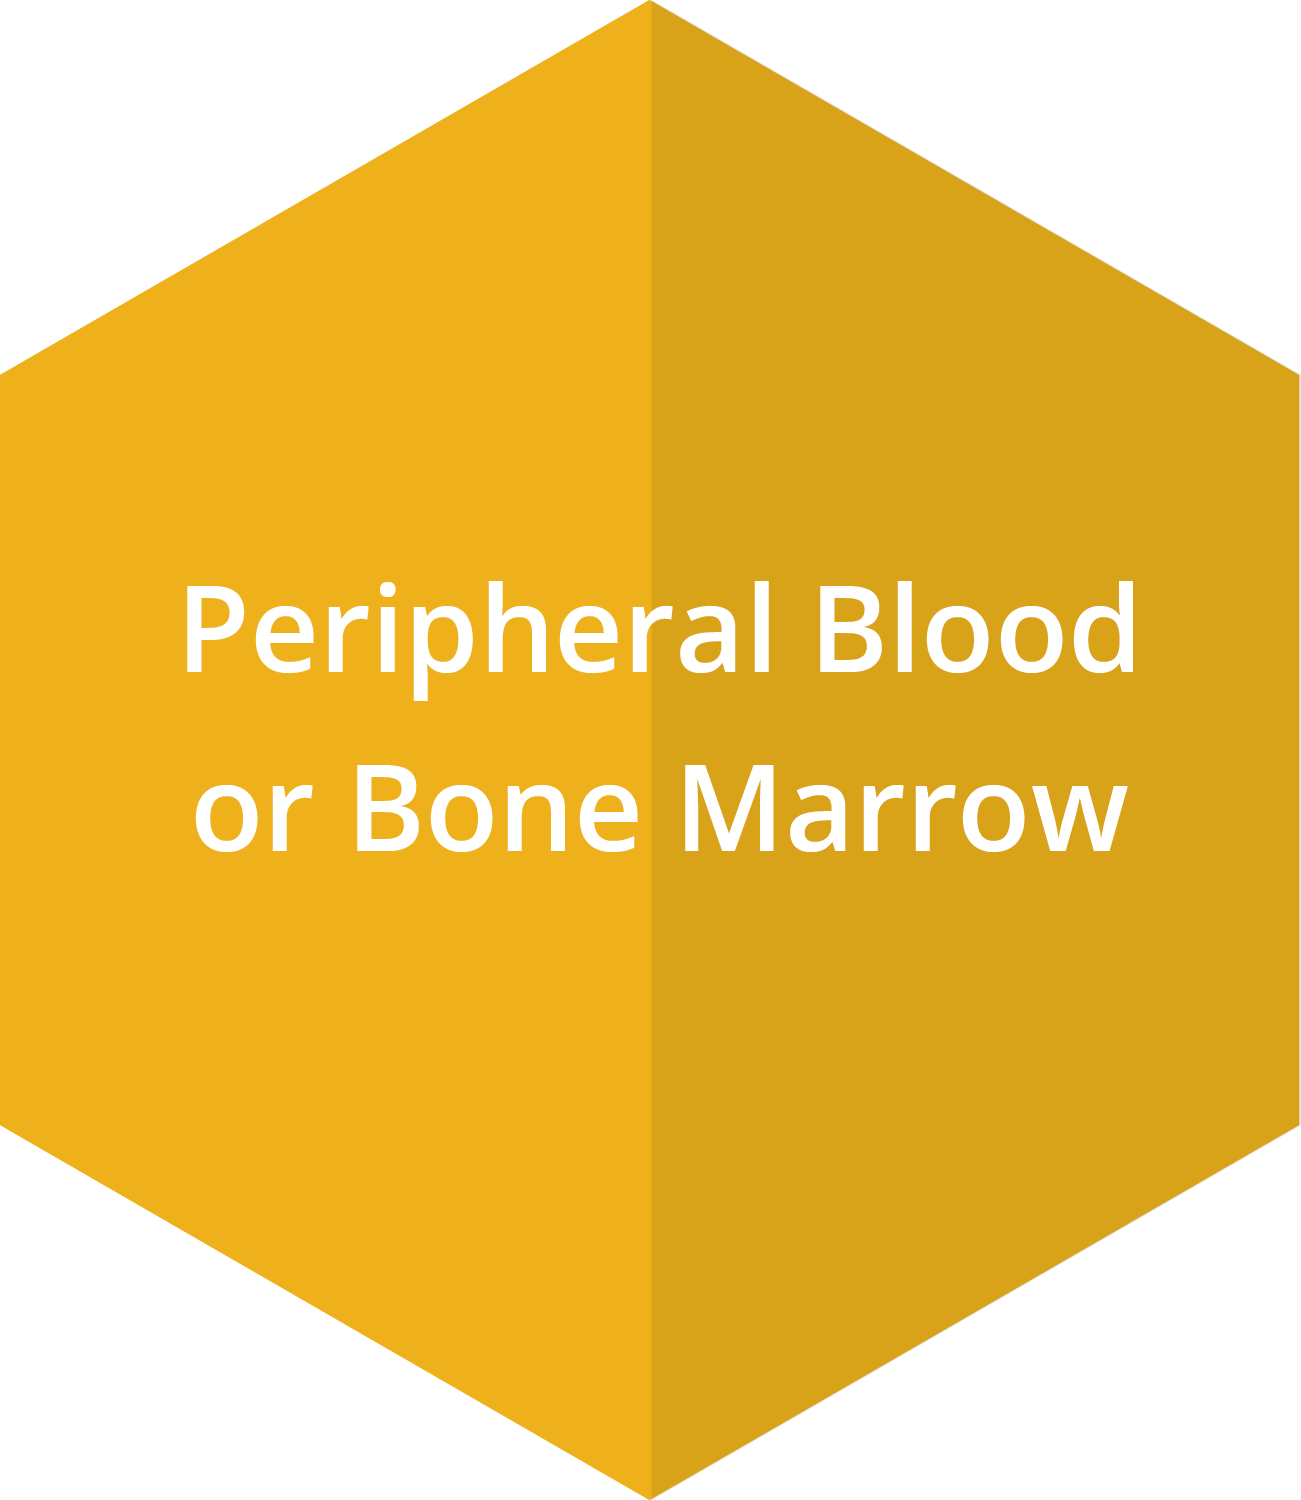 Peripheral Blood or Bone Marrow